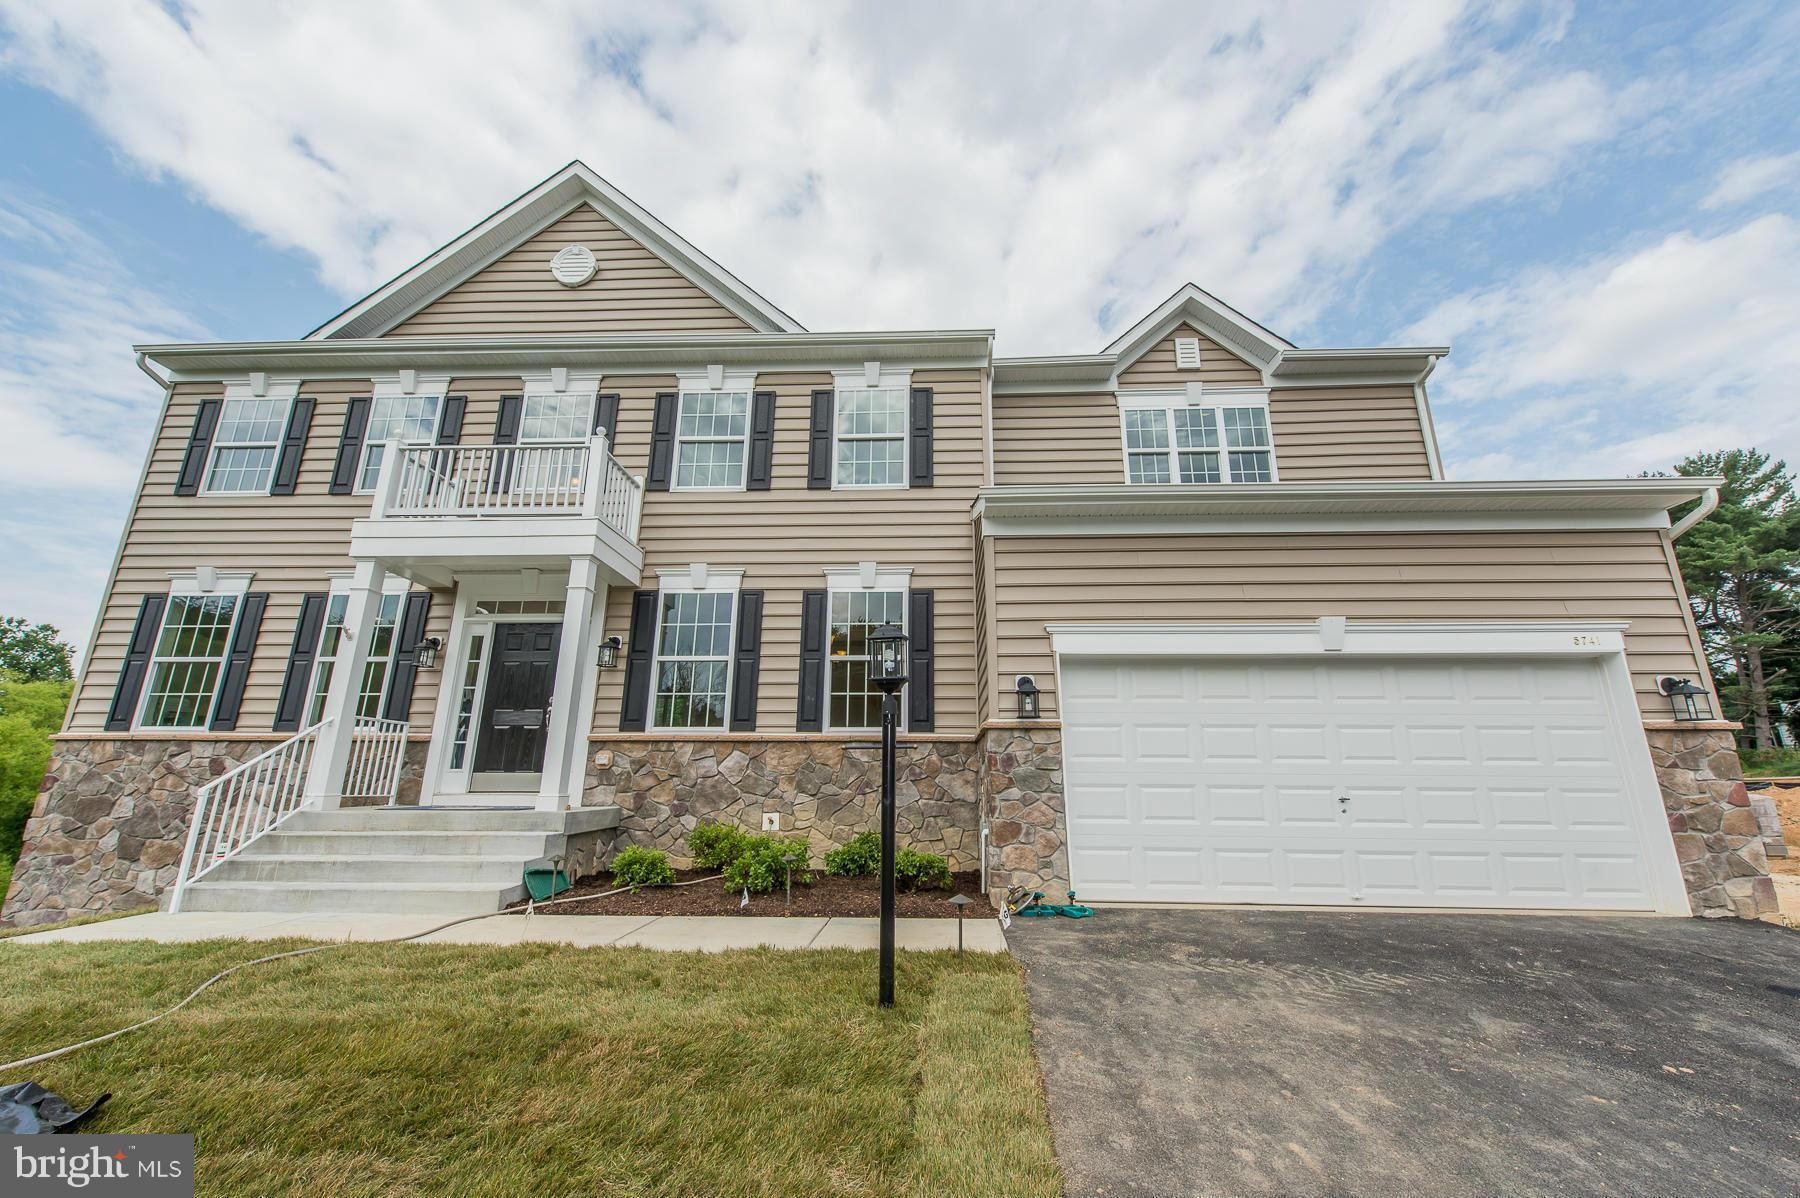 DYNAMIC to-be-built Calvert floorplan in an established new home community. Feature-rich with additi